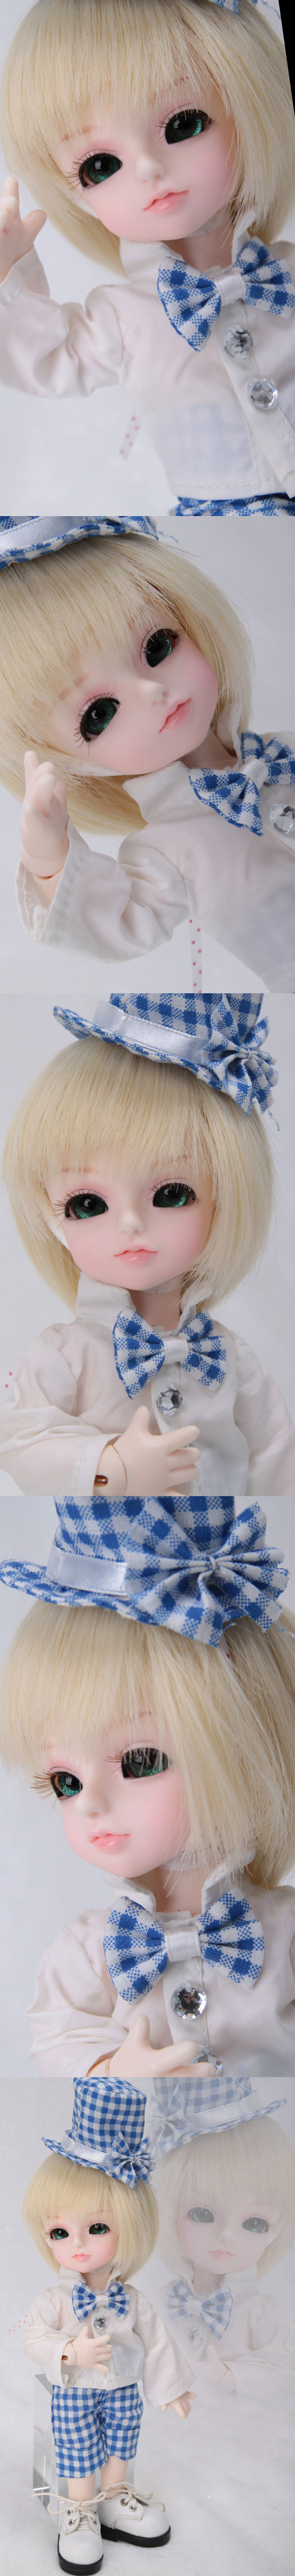 BJD YiQi 27cm Boy Ball-jointed doll